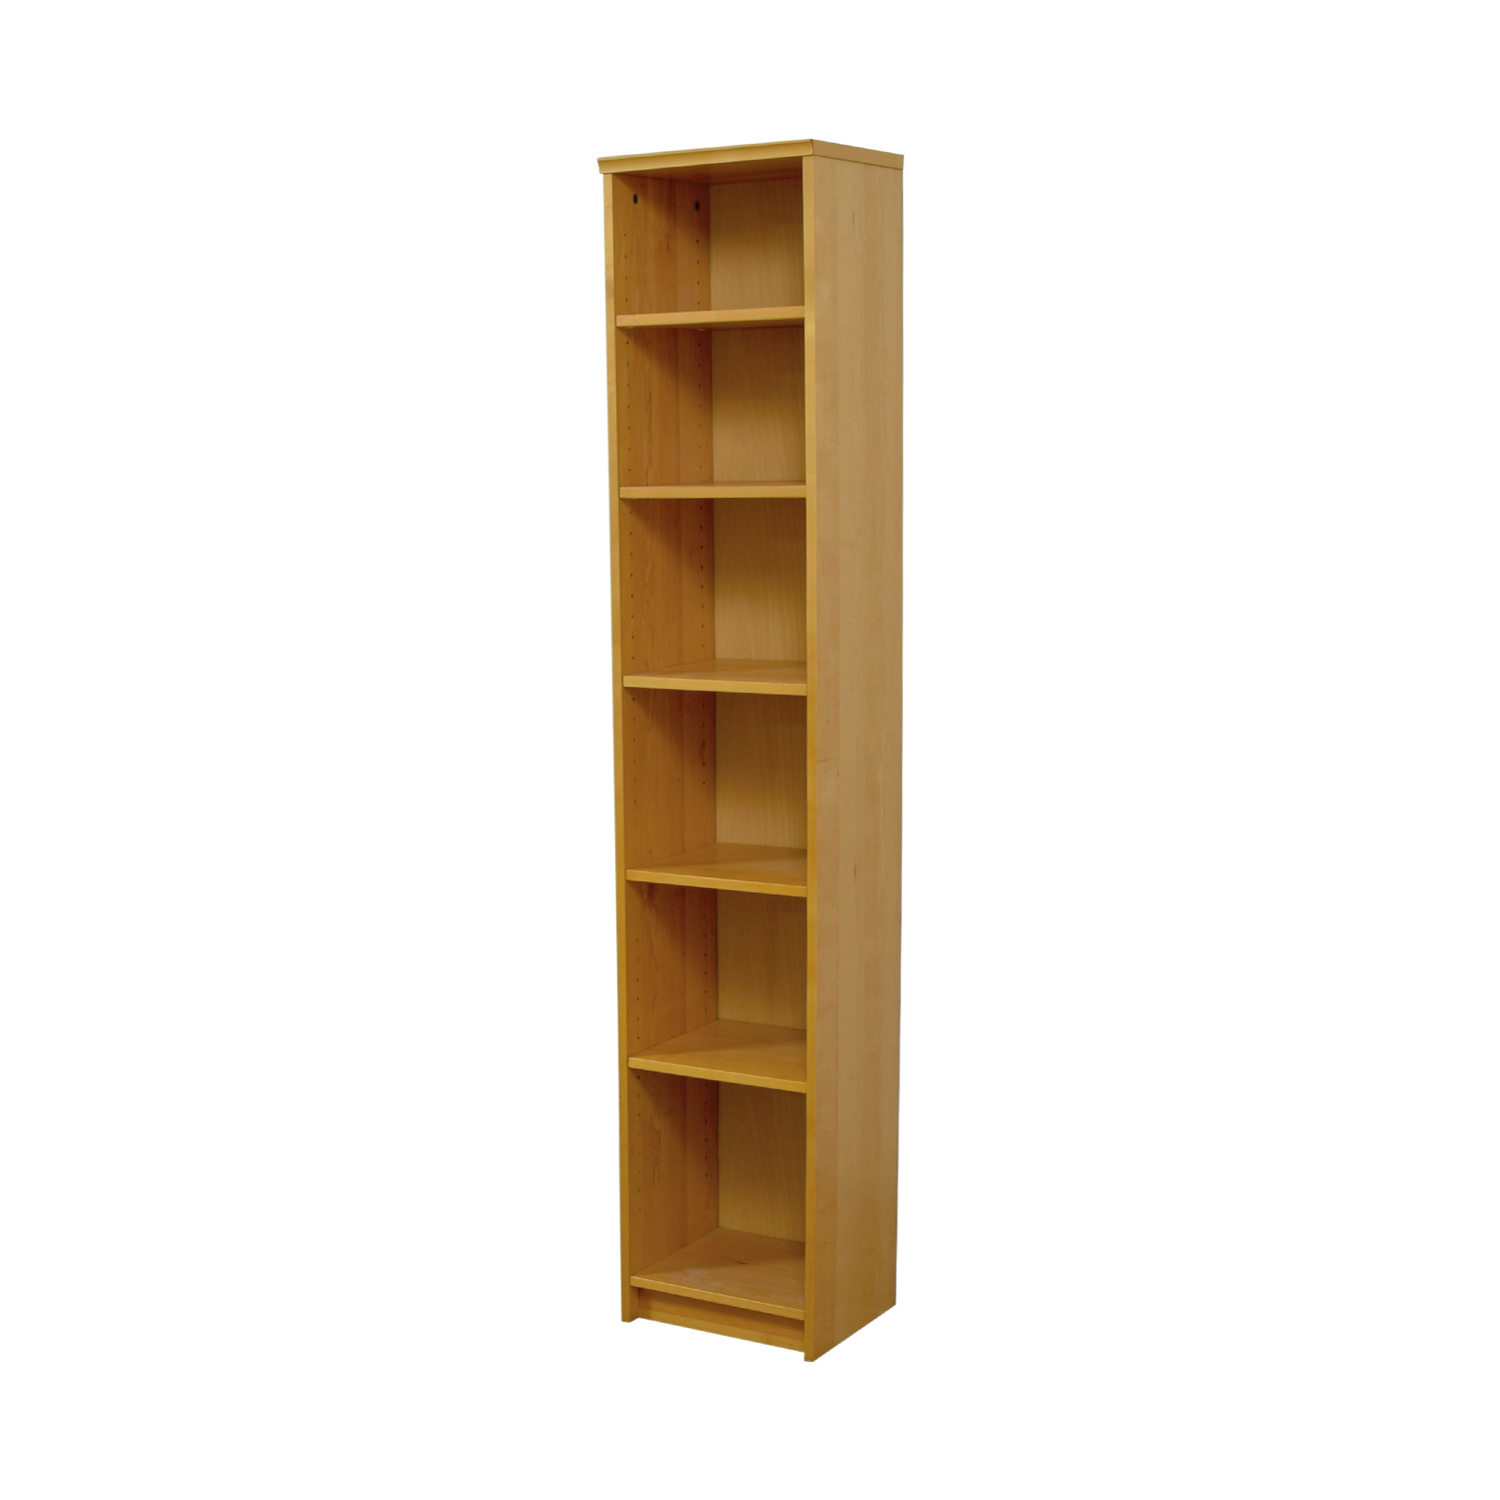 shop  Tall Wood Bookshelf online